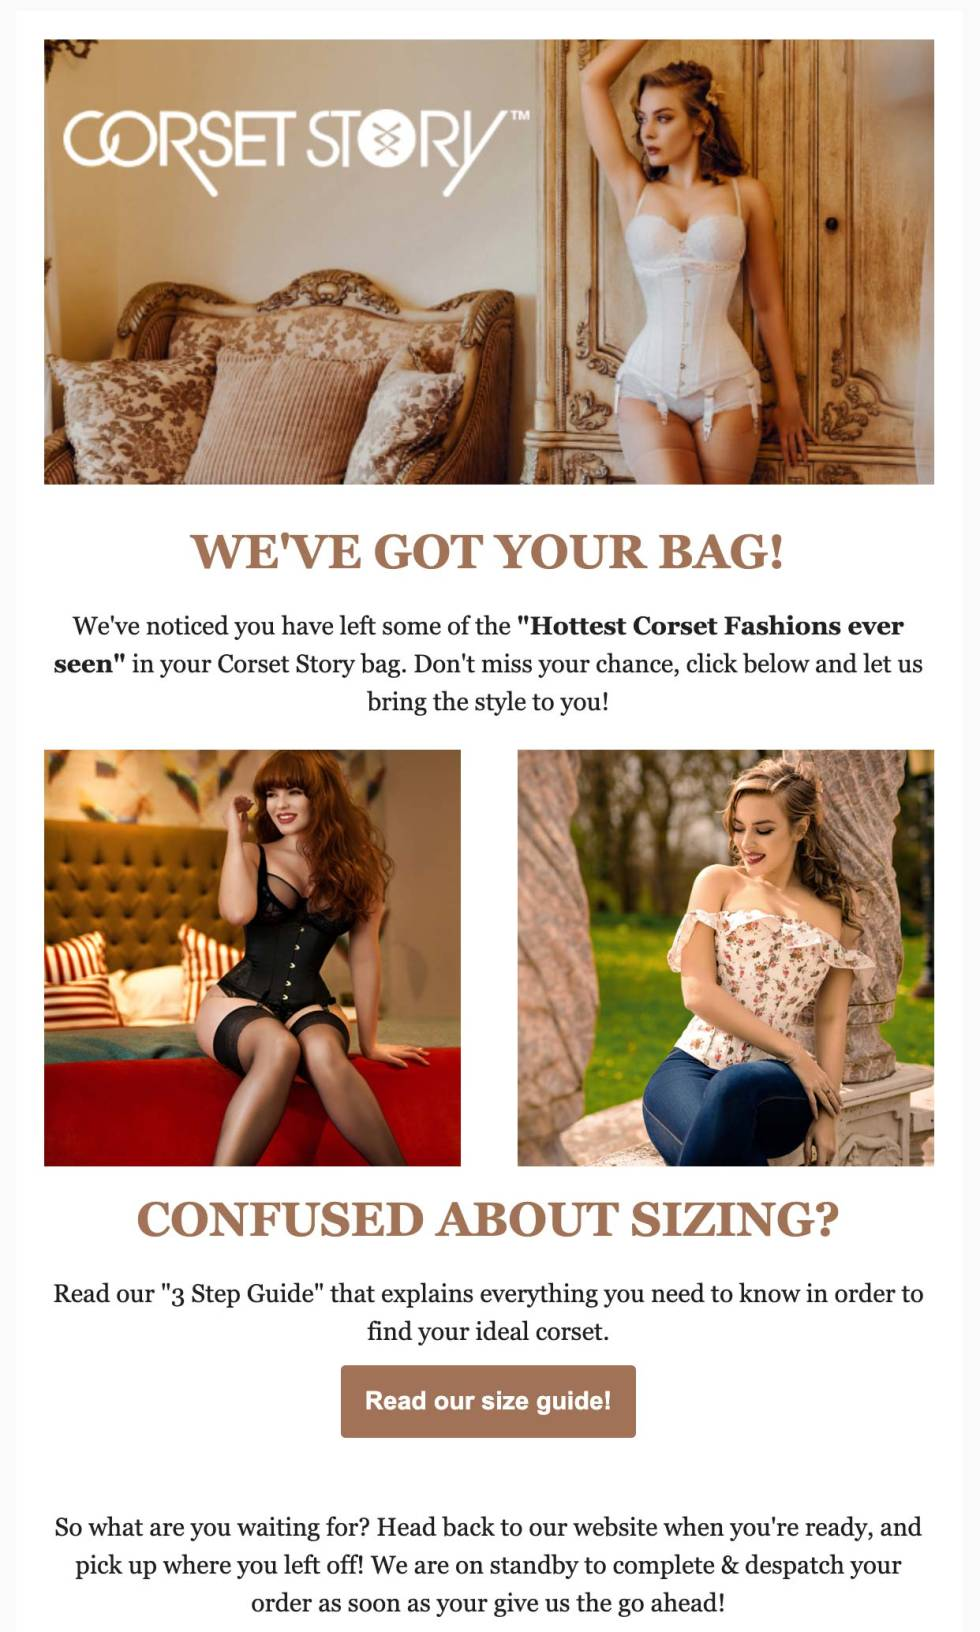 Image of newsletter with the text Corset story we've got your bag